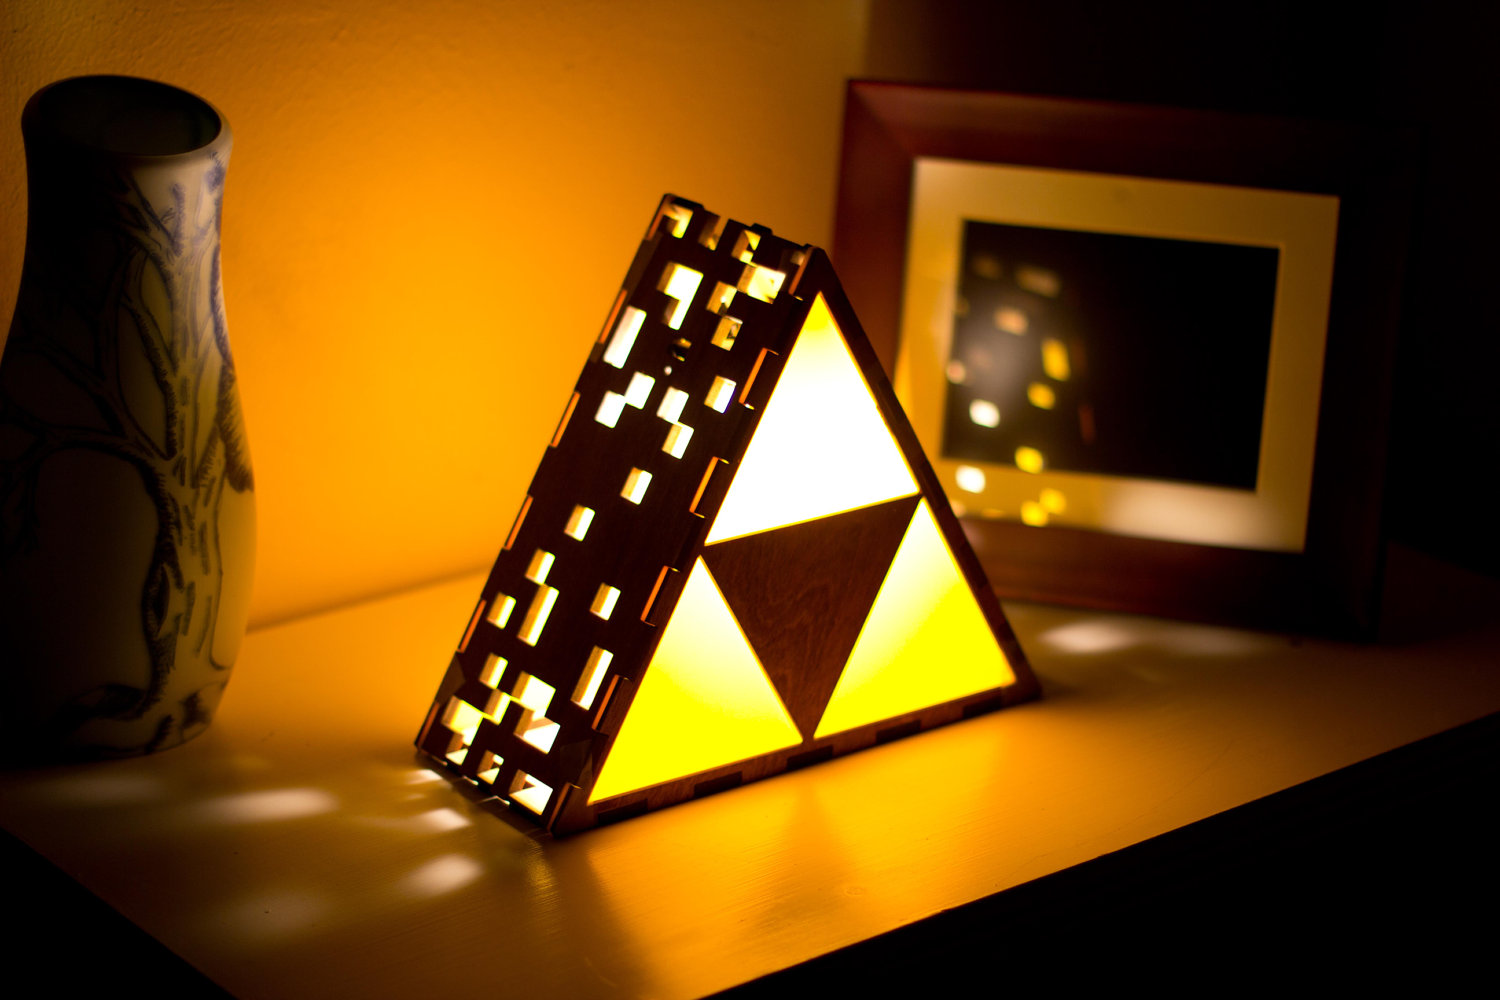 This Lamp Er Set Of Golden Triangles Will Grant Your Wildest Wishes